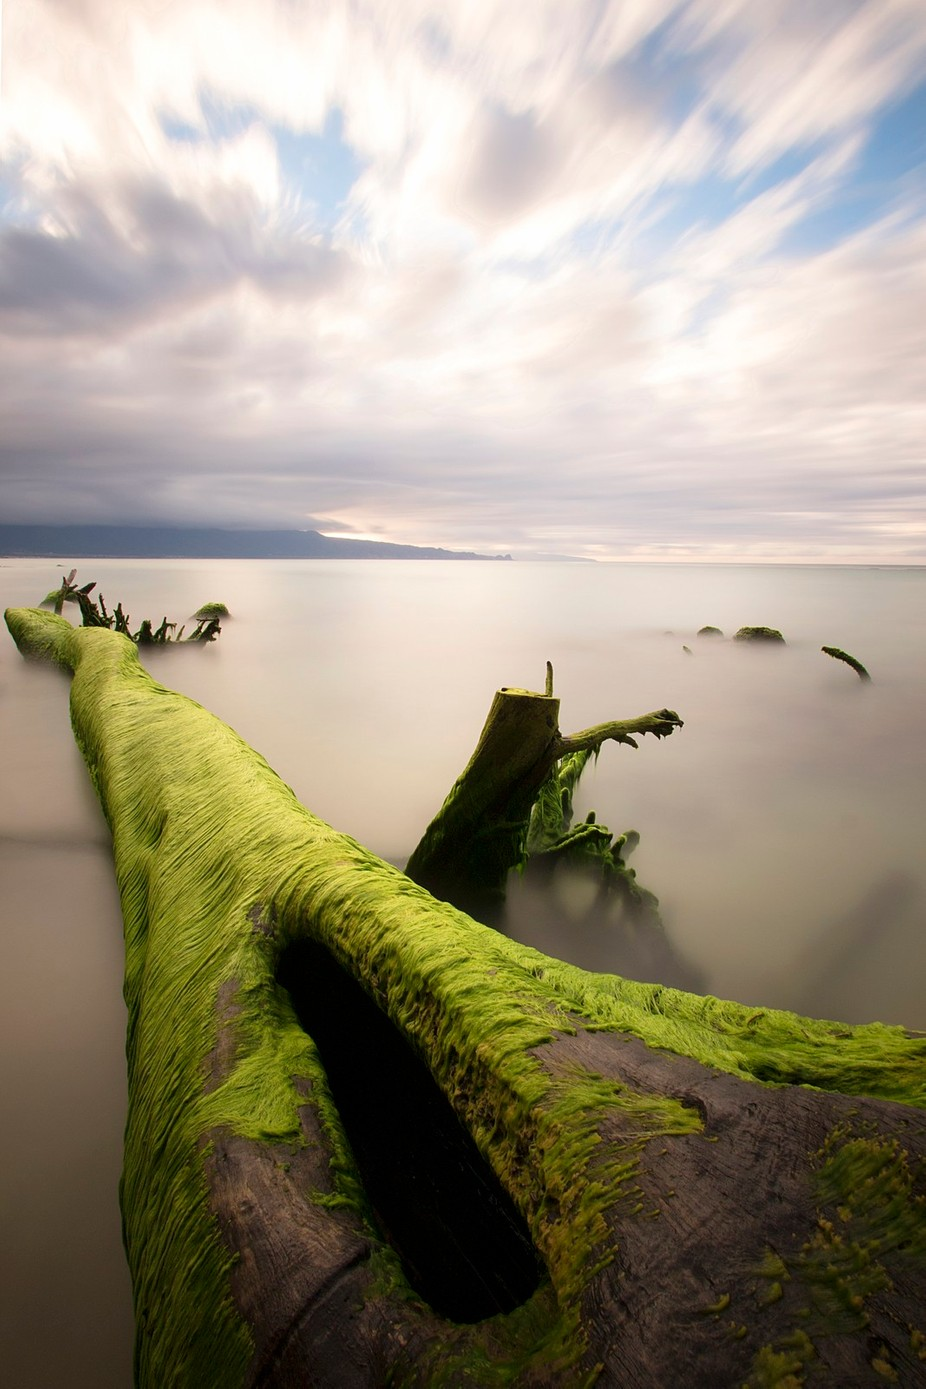 The Green Tree  by Stu_Soley - The Moving Clouds Photo Contest